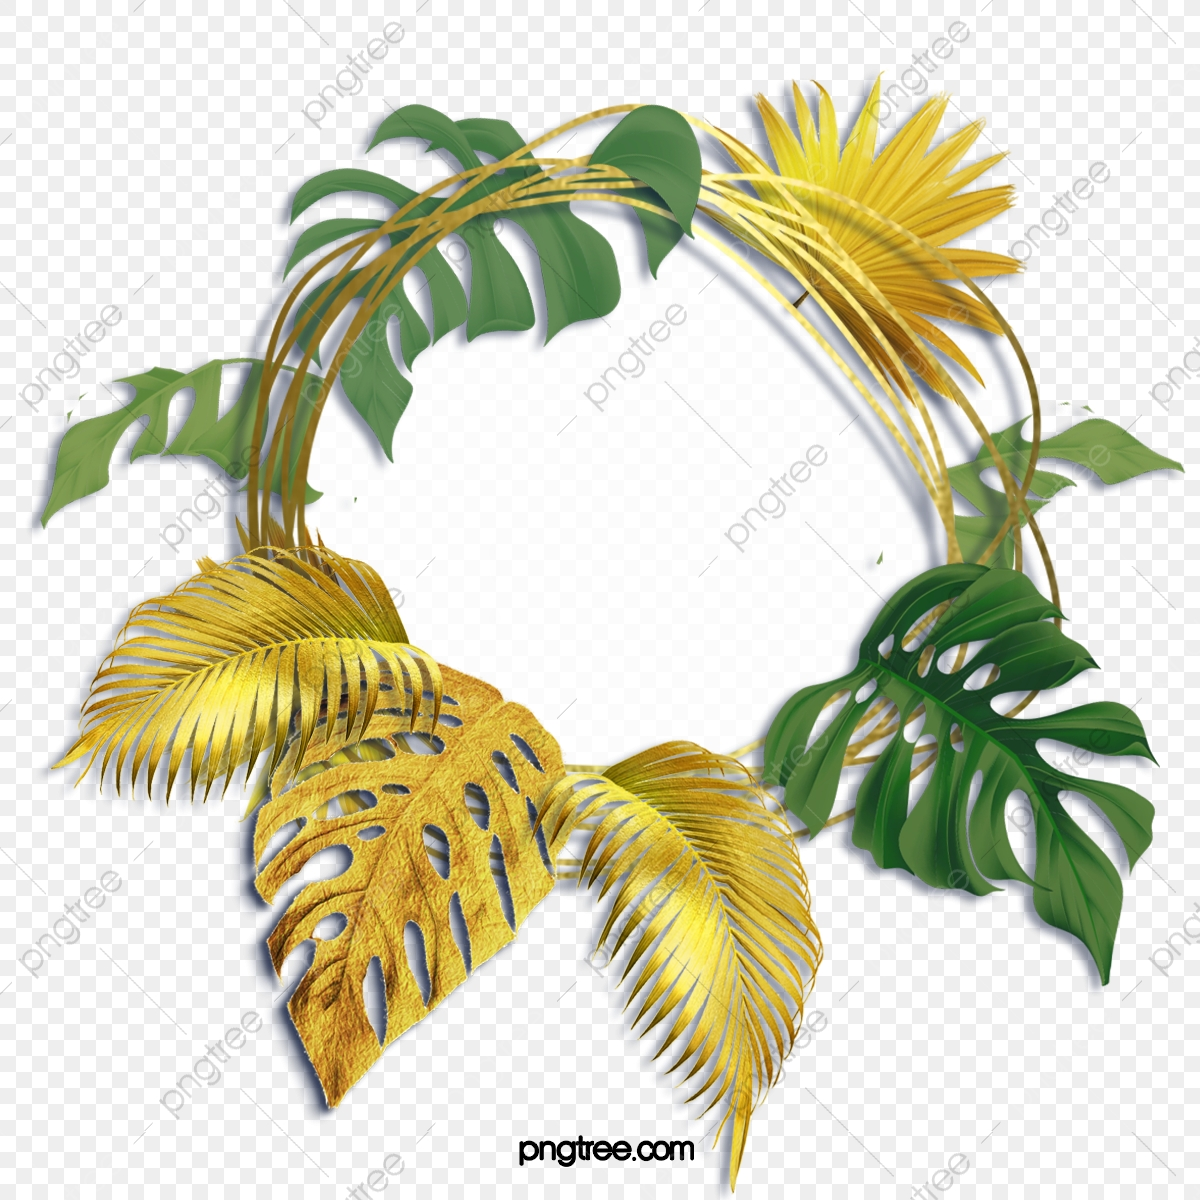 Leaves Tropical Leaves Border Leaf Tropical Plants Frame Png Transparent Clipart Image And Psd File For Free Download Nature tropical leaves leaves tropical tropical nature leaves nature decoration natural leaf decorative background plant ornament symbol decor template element backdrop ornate ornamental colorful artistic emblem floral classic green bright sketch modern icon flower classical retro beautiful elegant color. https pngtree com freepng leaves tropical leaves border 4896599 html